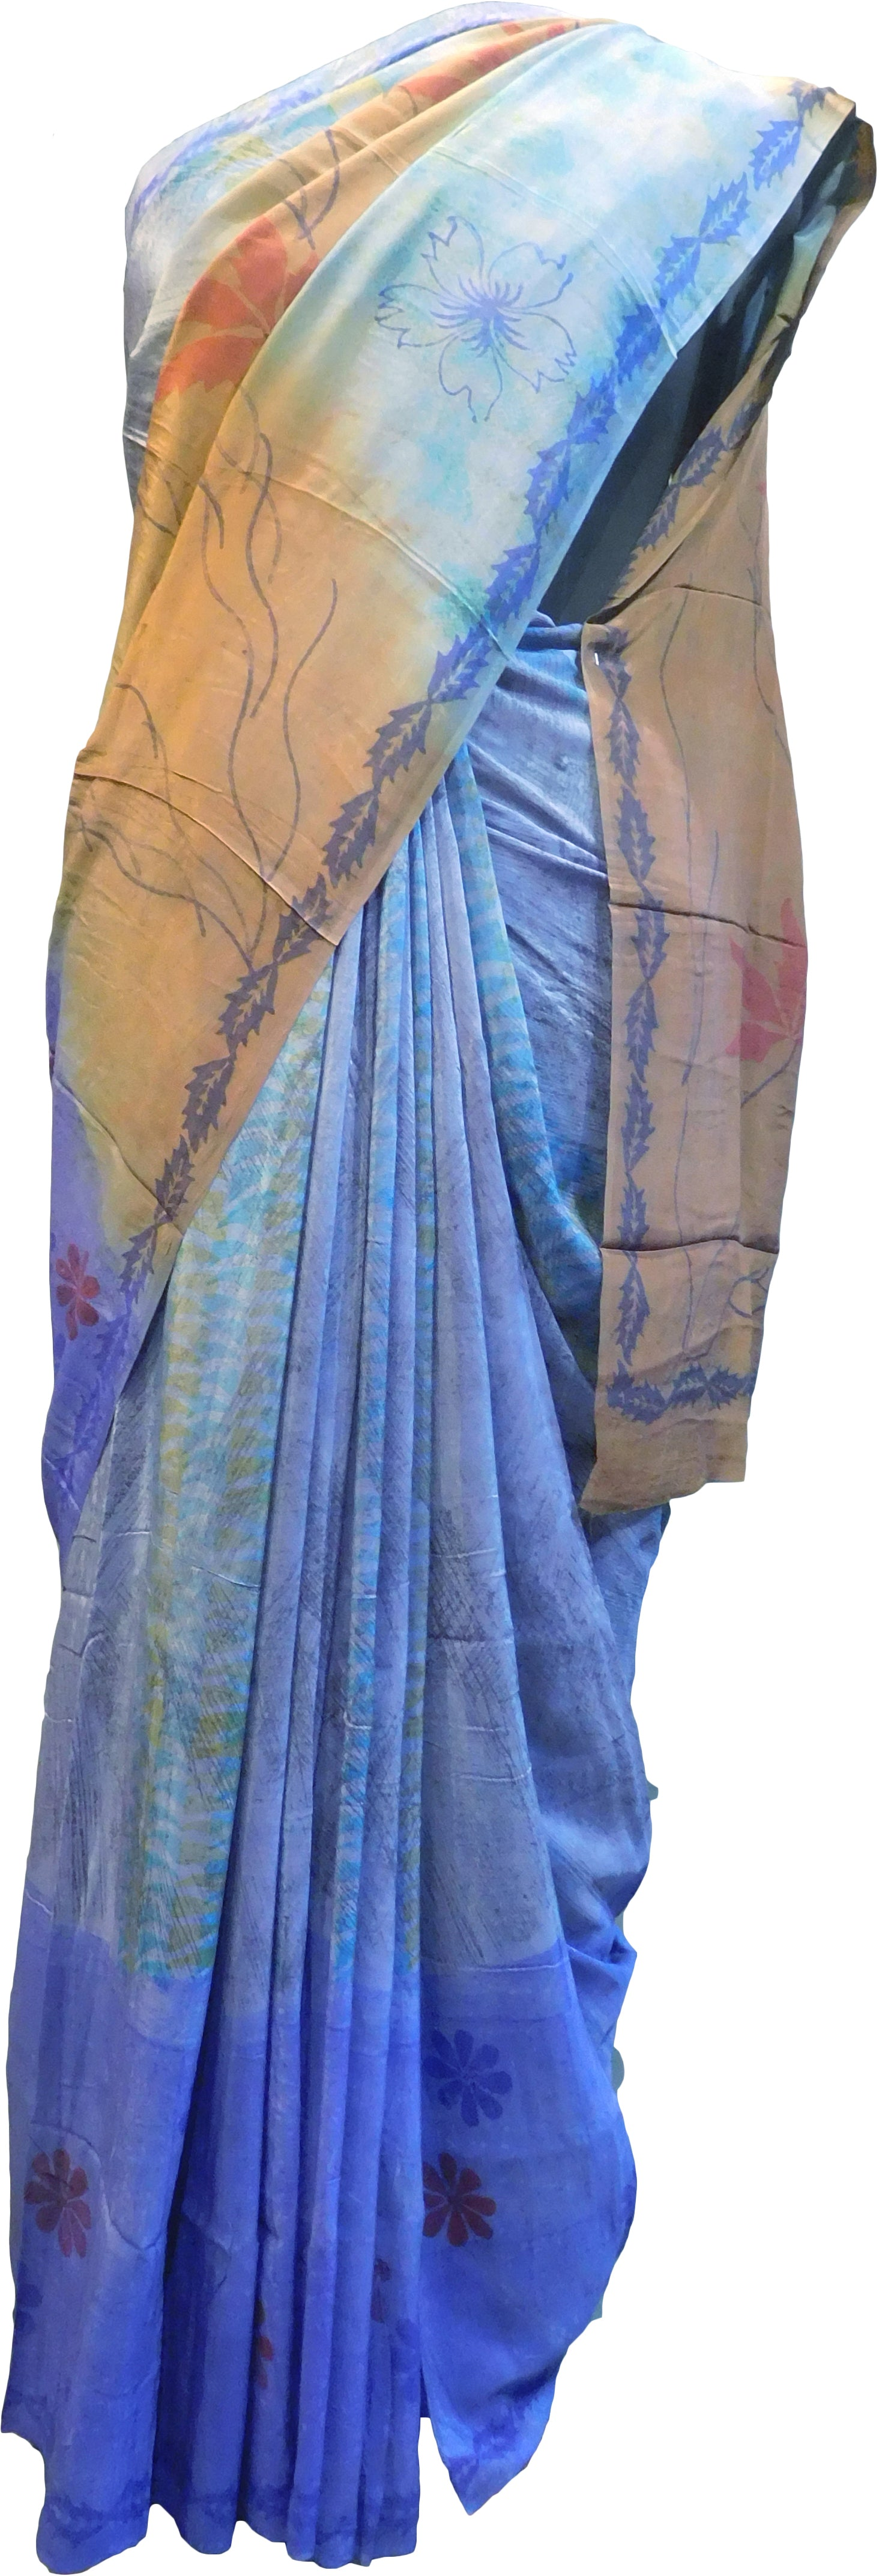 Multicolor Designer Wedding Partywear Pure Crepe Hand Brush Reprinted Kolkata Saree Sari RP265